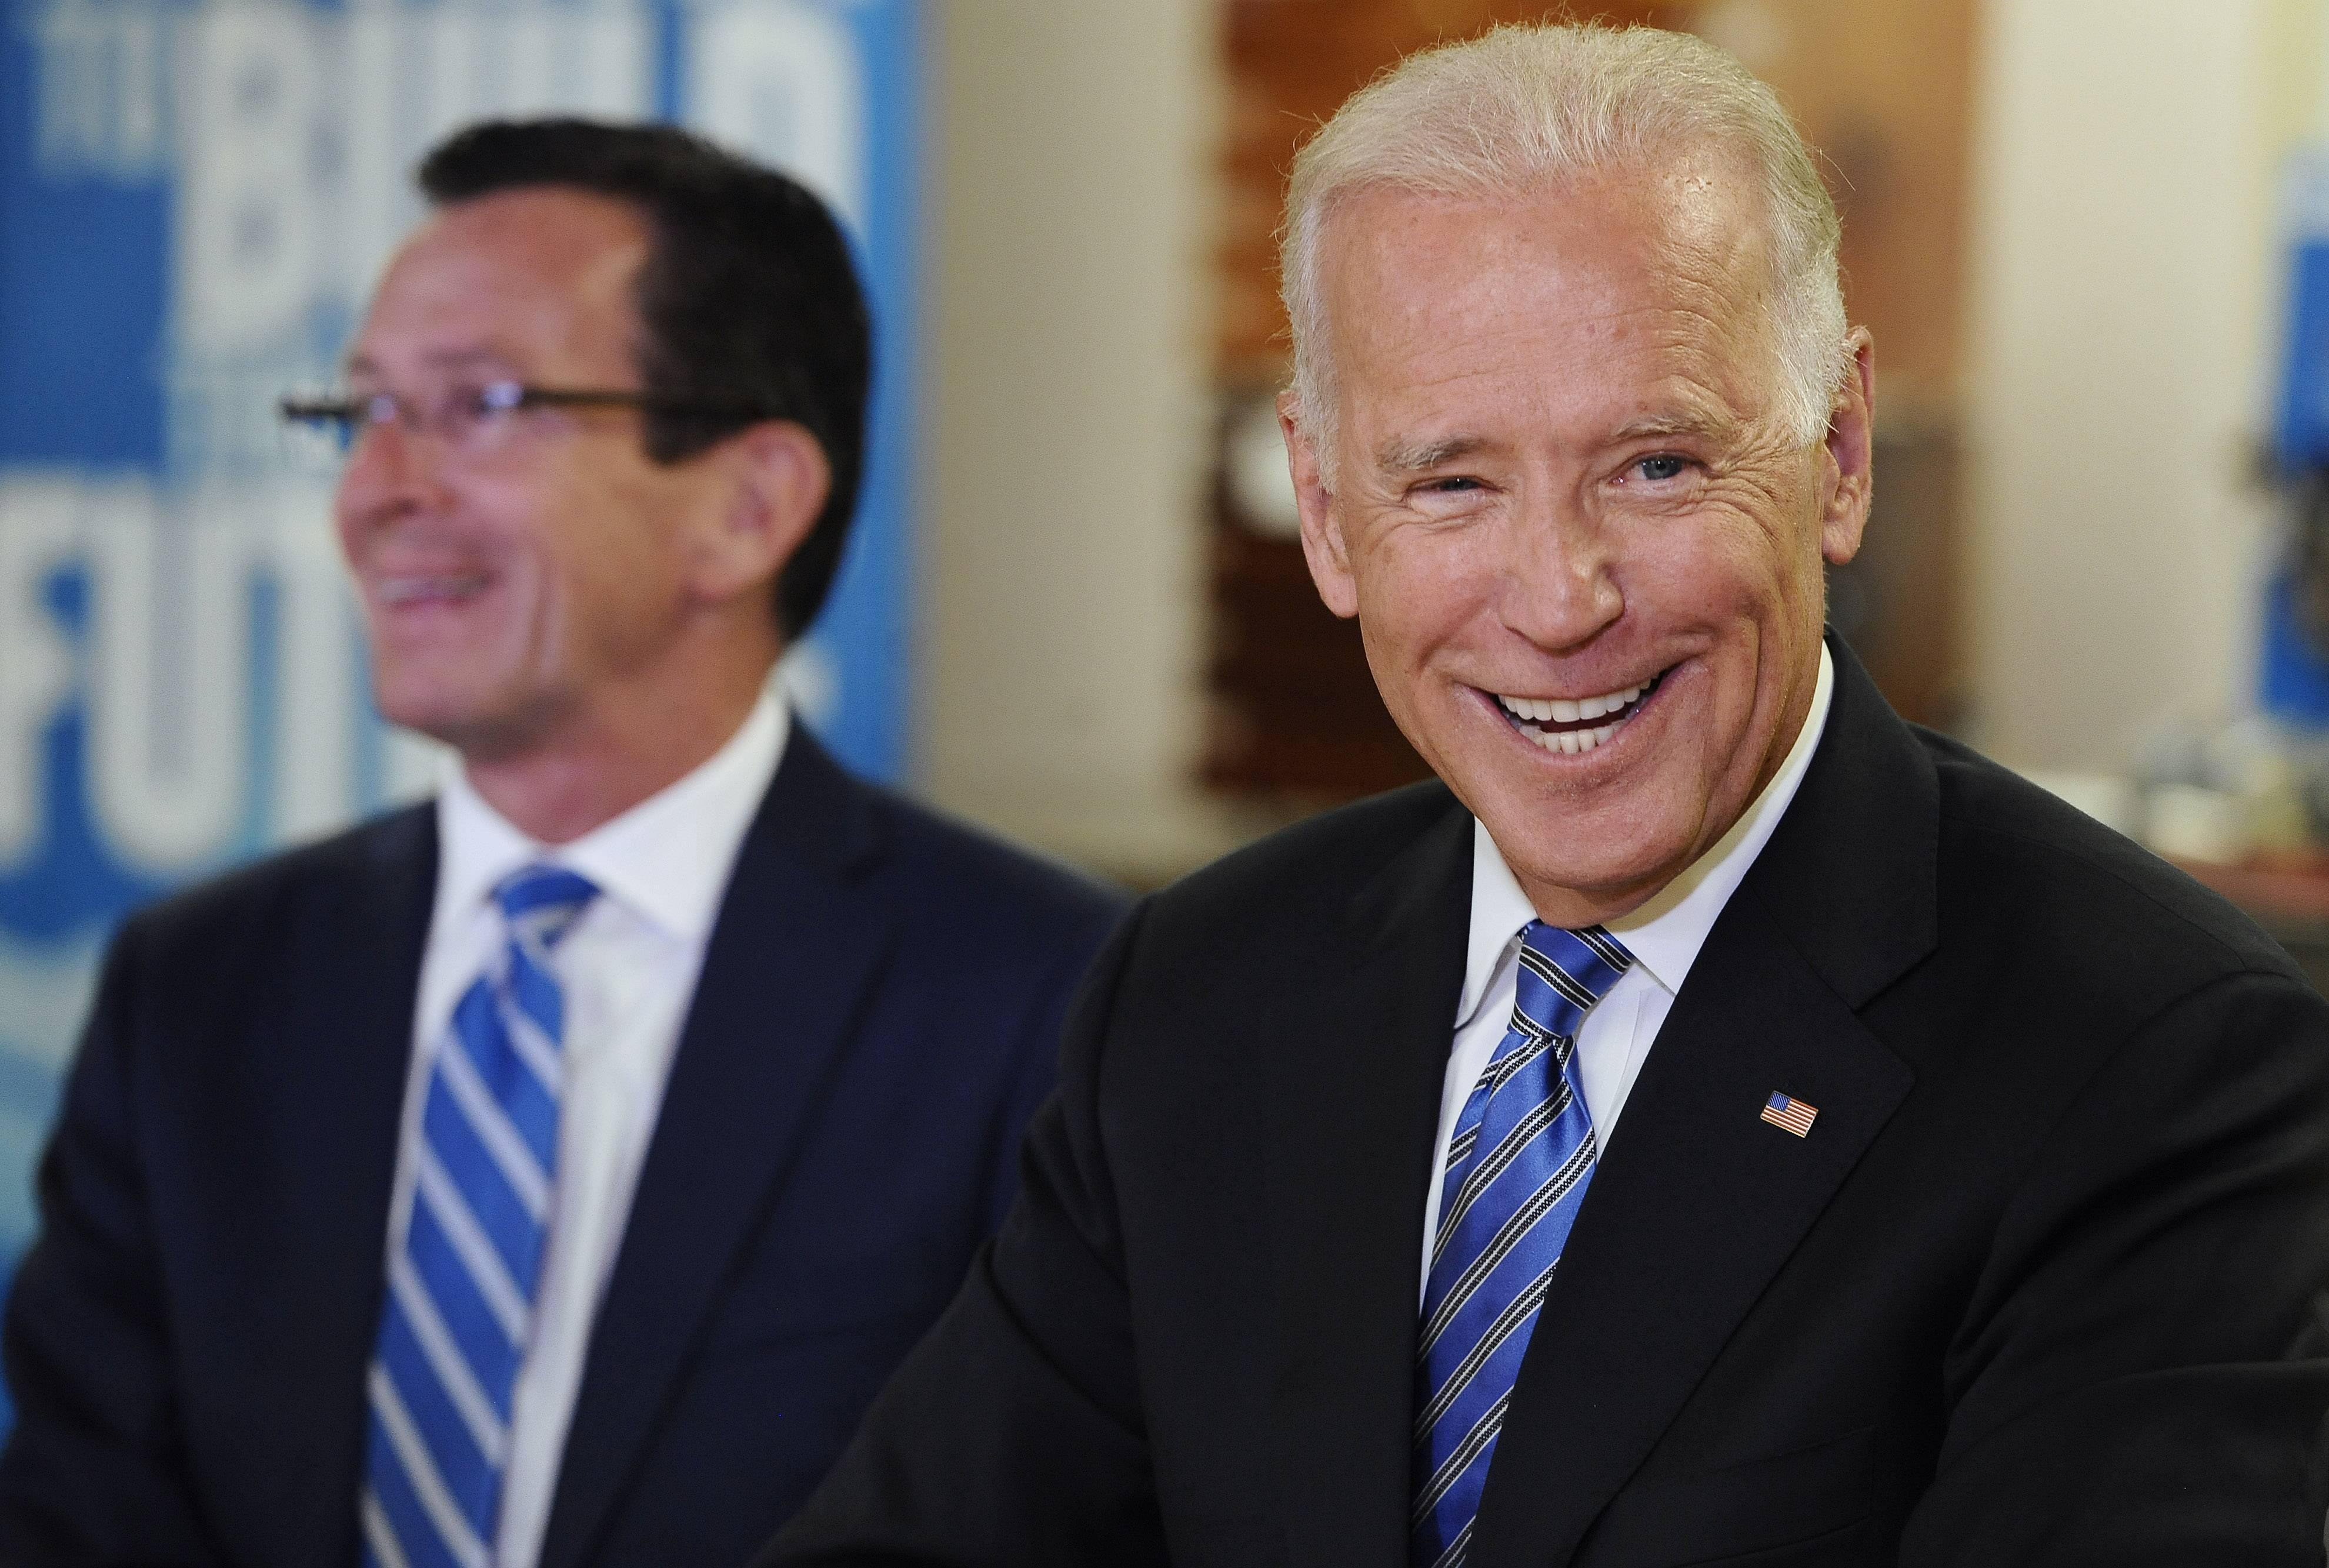 Vice President Joe Biden, right, with Connecticut Gov. Dannel P. Malloy.